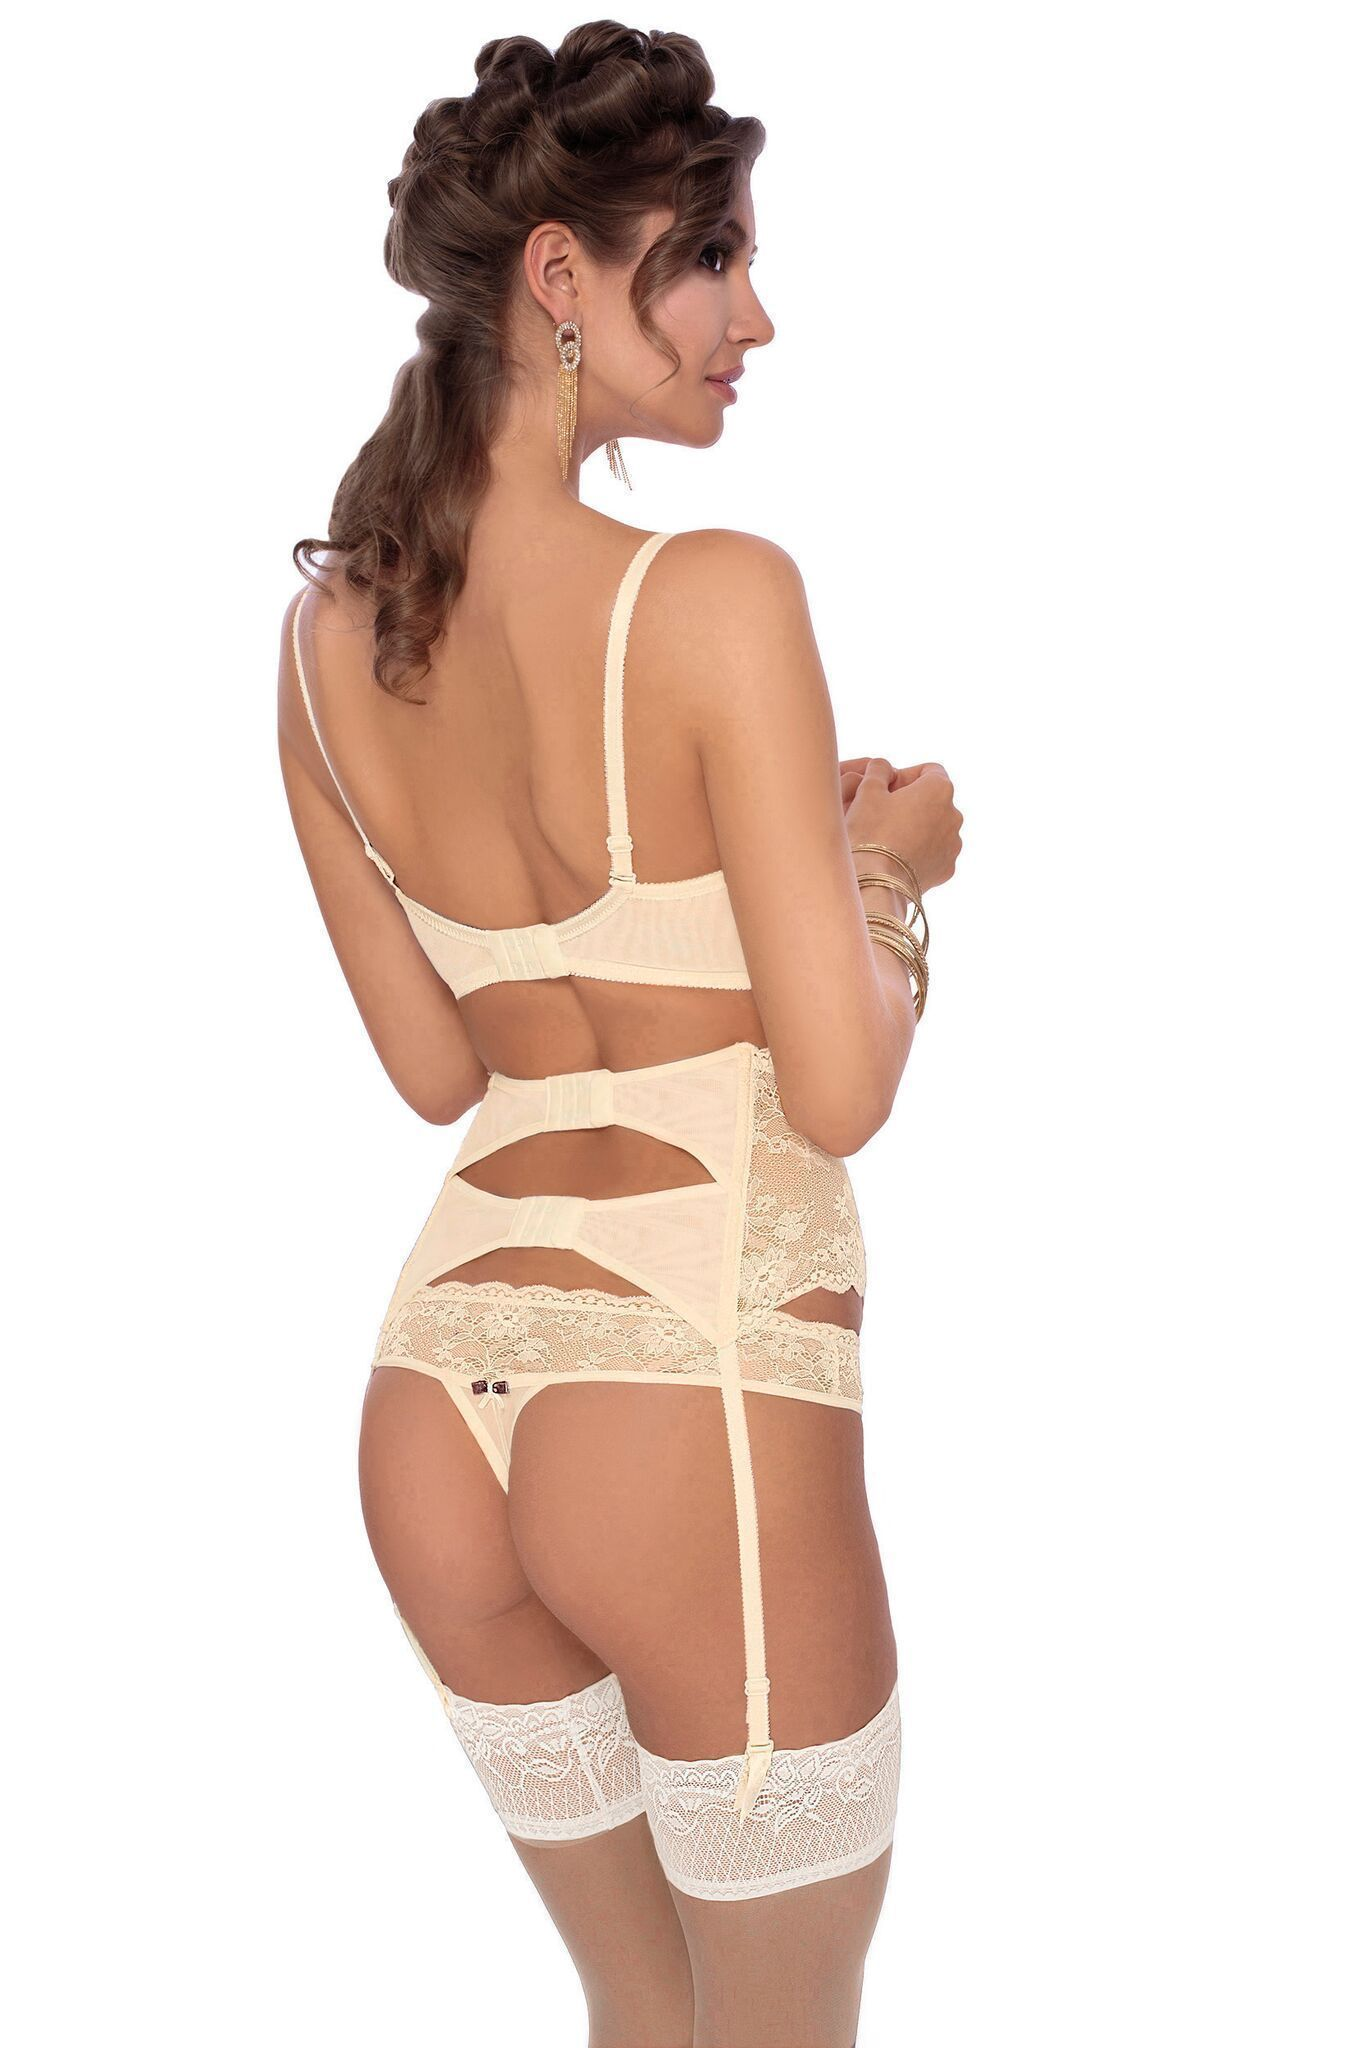 Roza Fifi Thong (Ivory) - Thongs - Roza - Charm and Lace Boutique